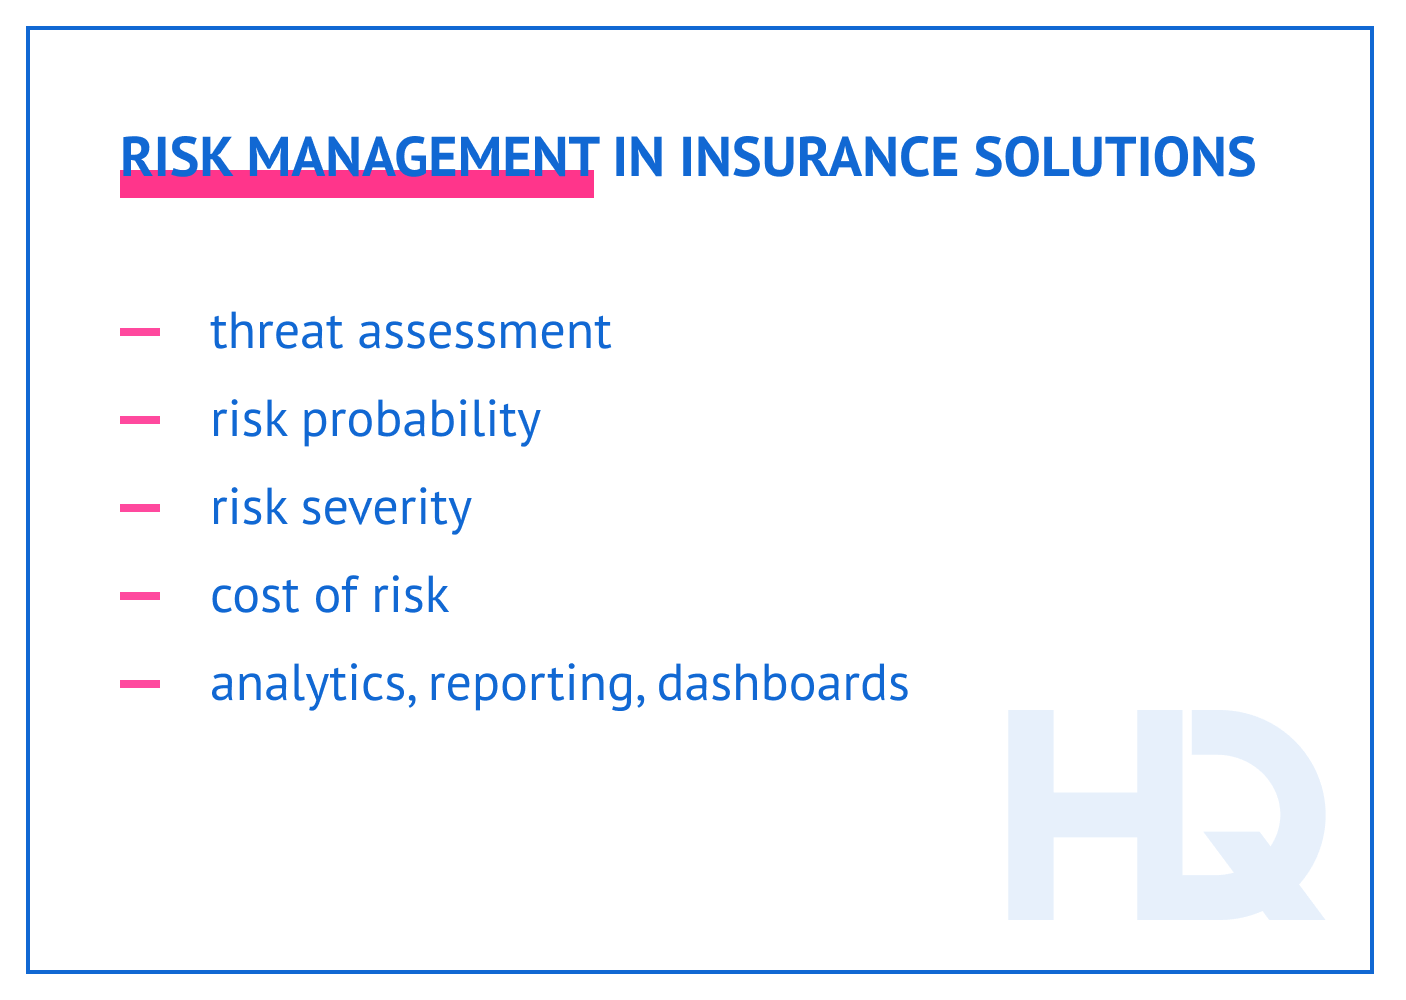 Risk management in insurance solutions: software features.